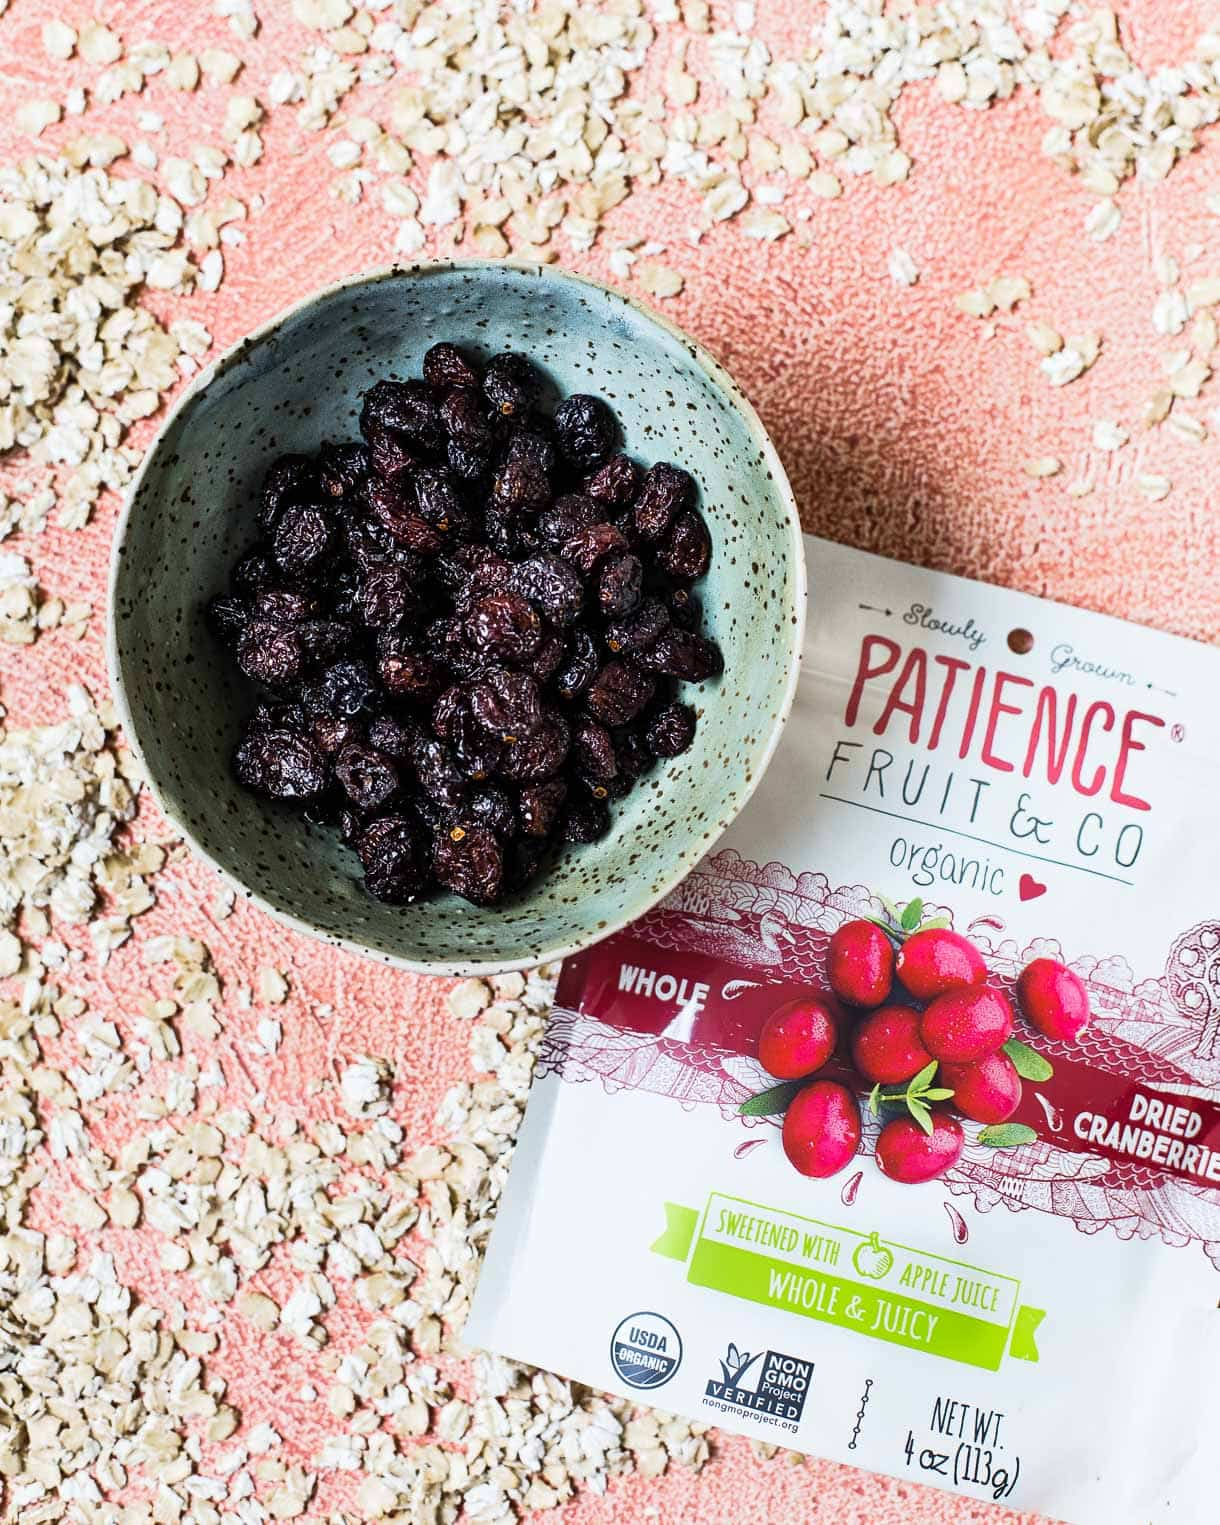 Patience Fruit & Co Dried Cranberries